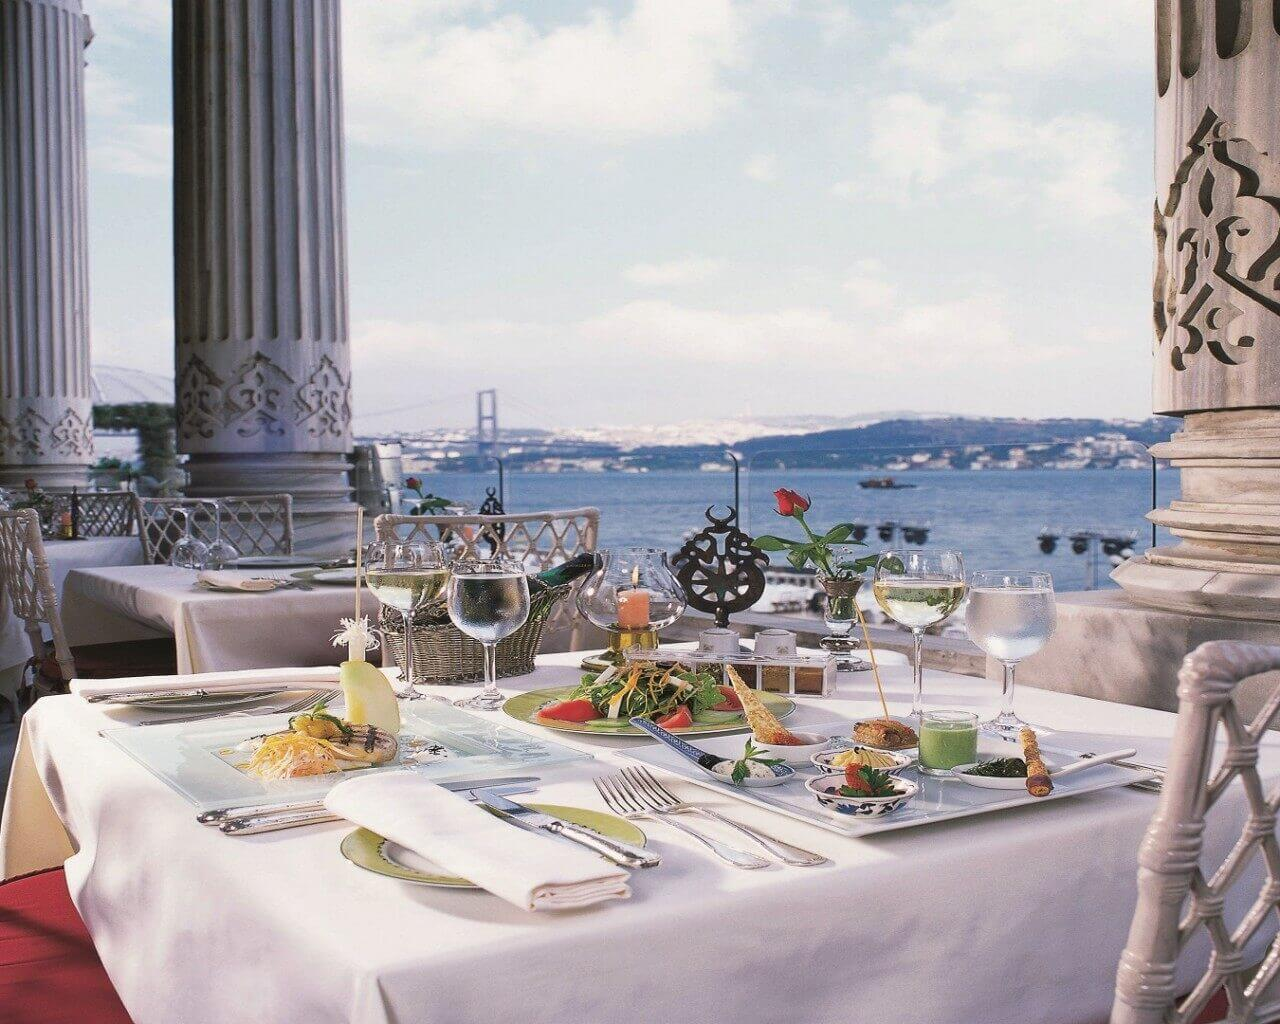 Tugra Restaurant & Lounge, Istanbul